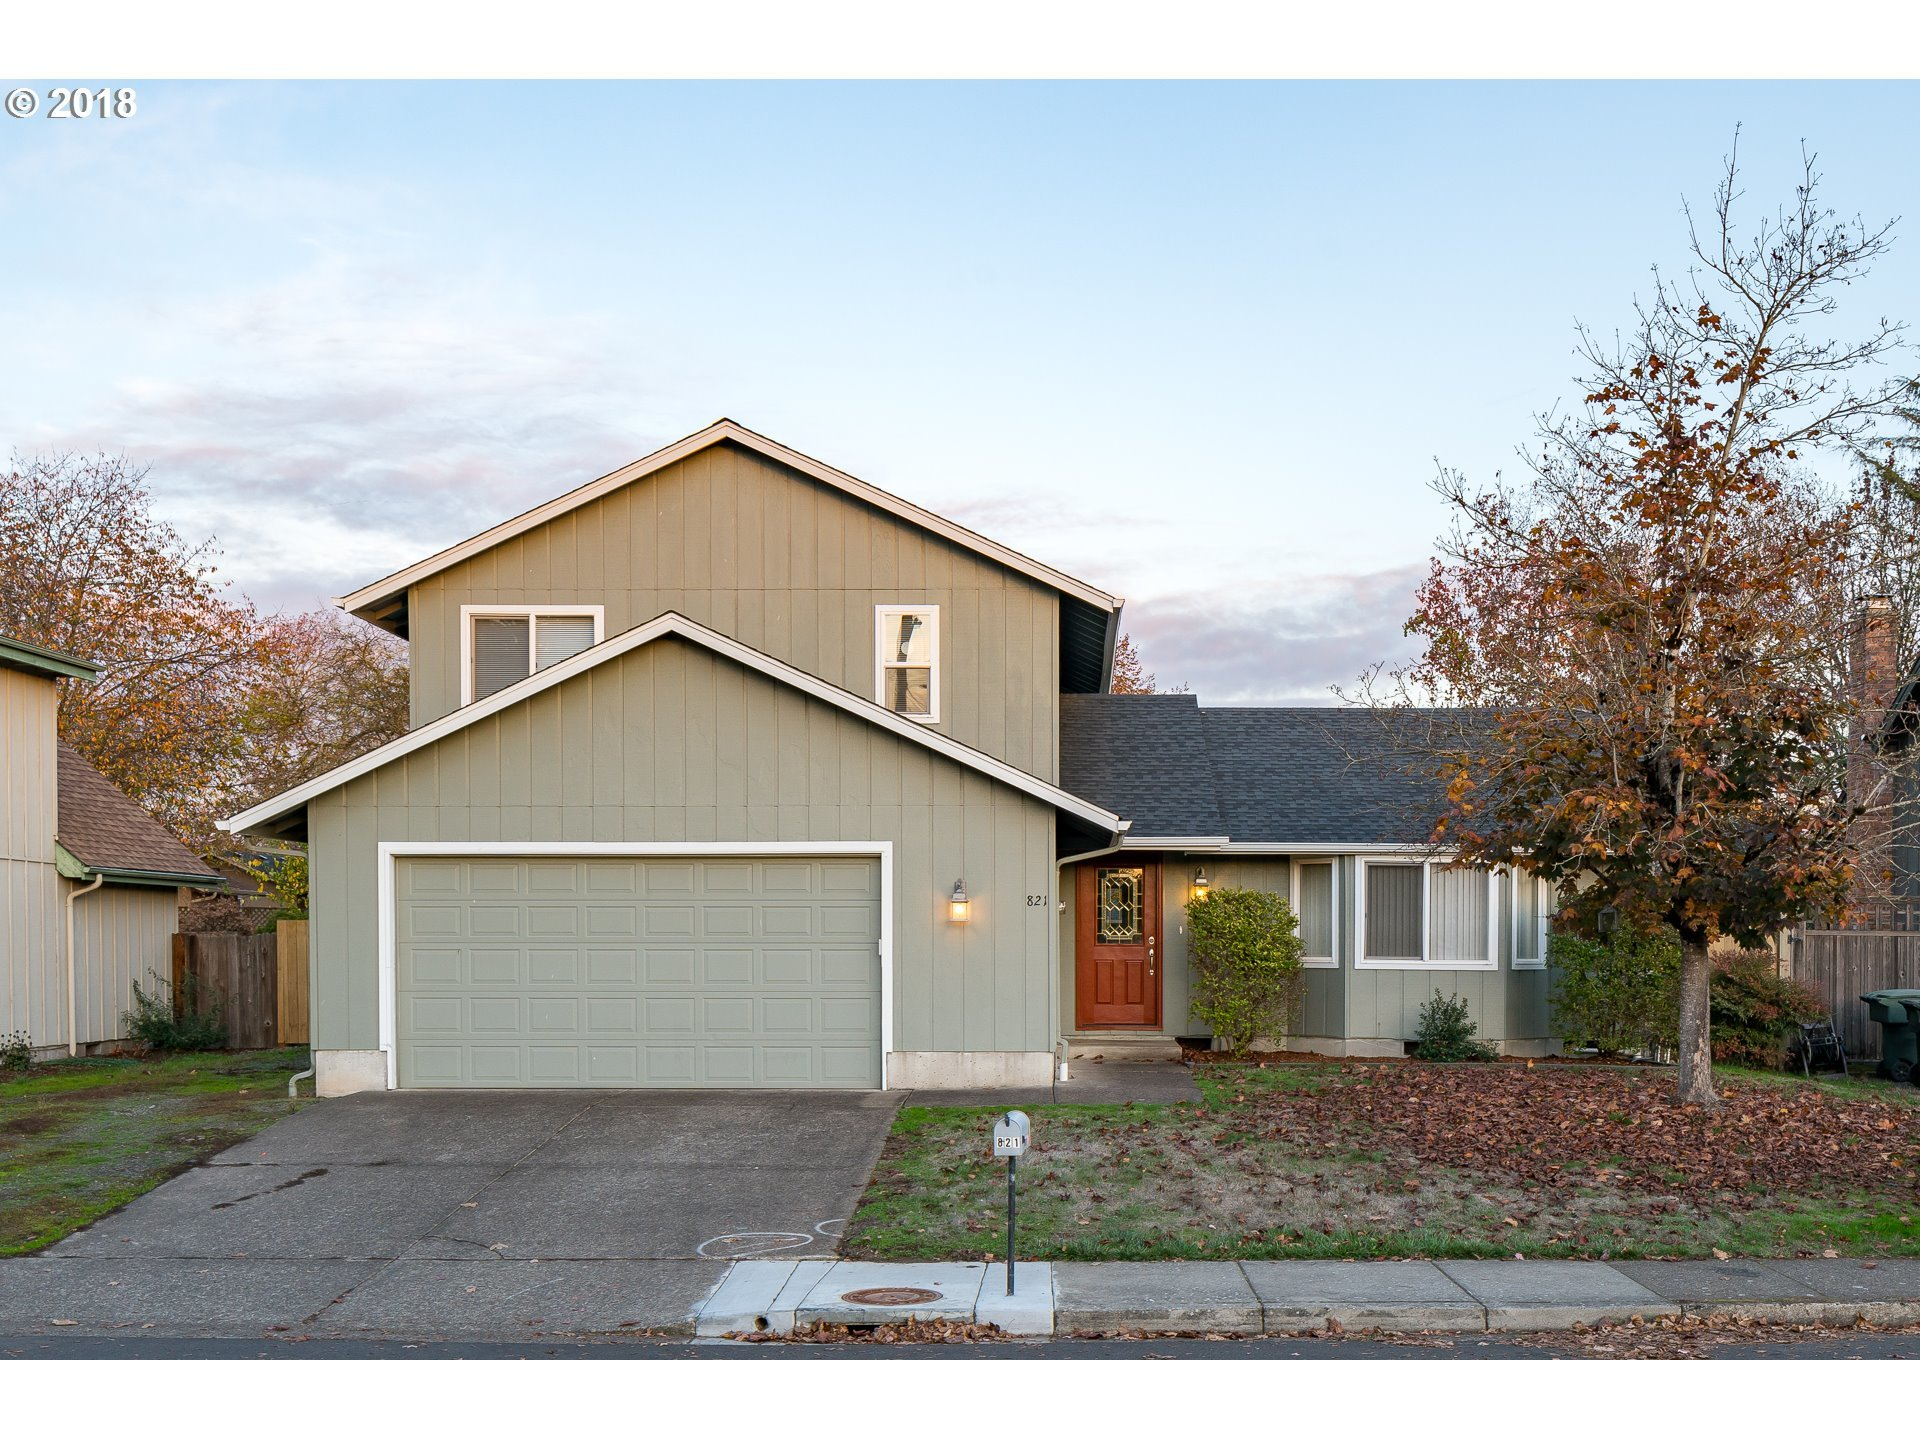 3 bed / 2 full, 1 partial baths Home in Eugene for $325,000